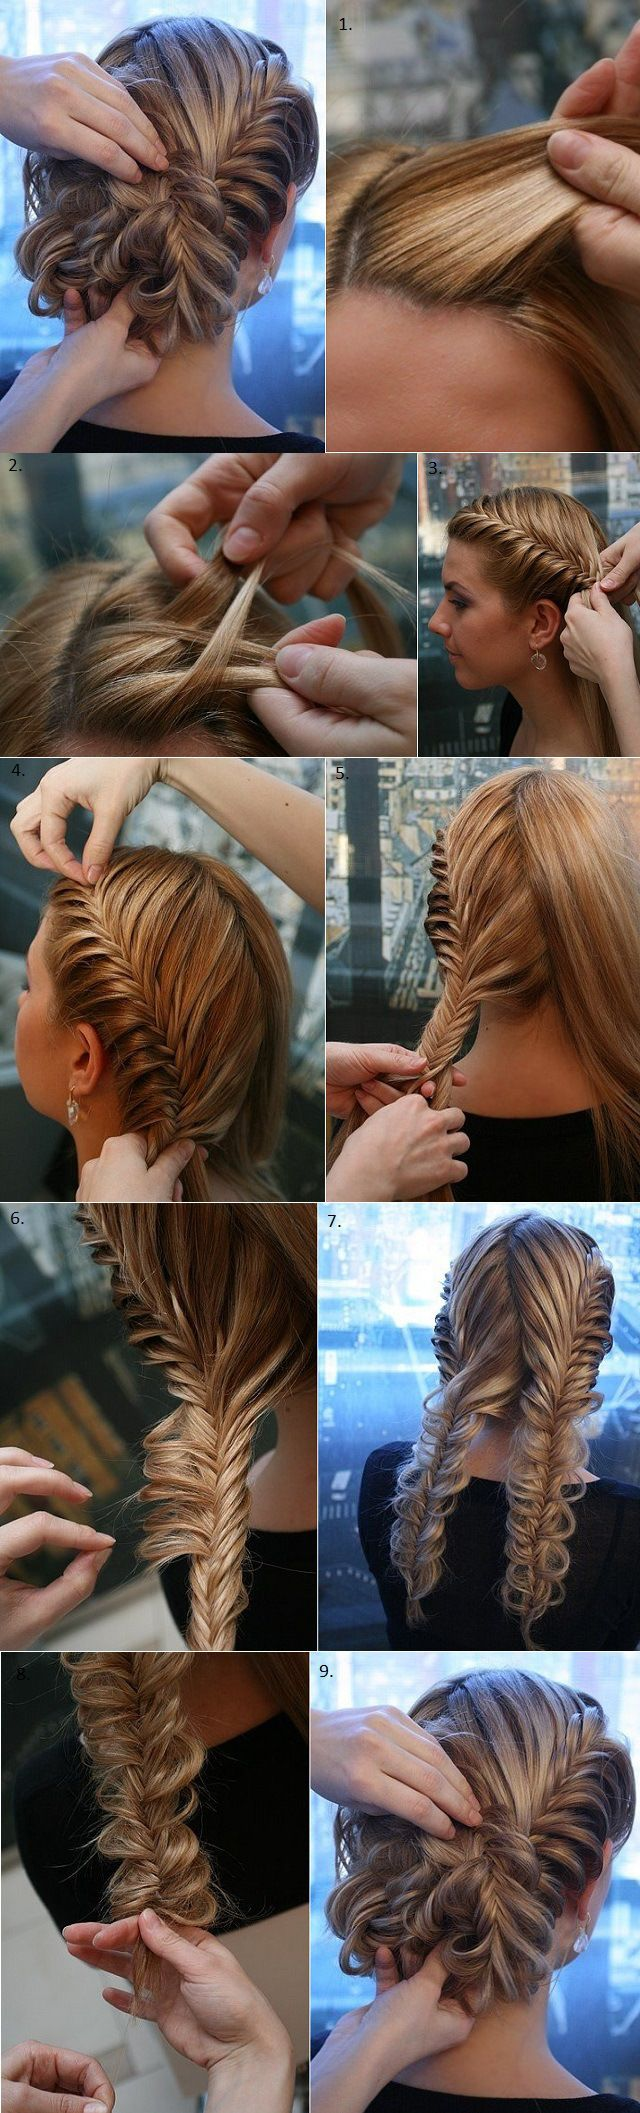 How to make braided hairstyle cute and easy braided hairstyle